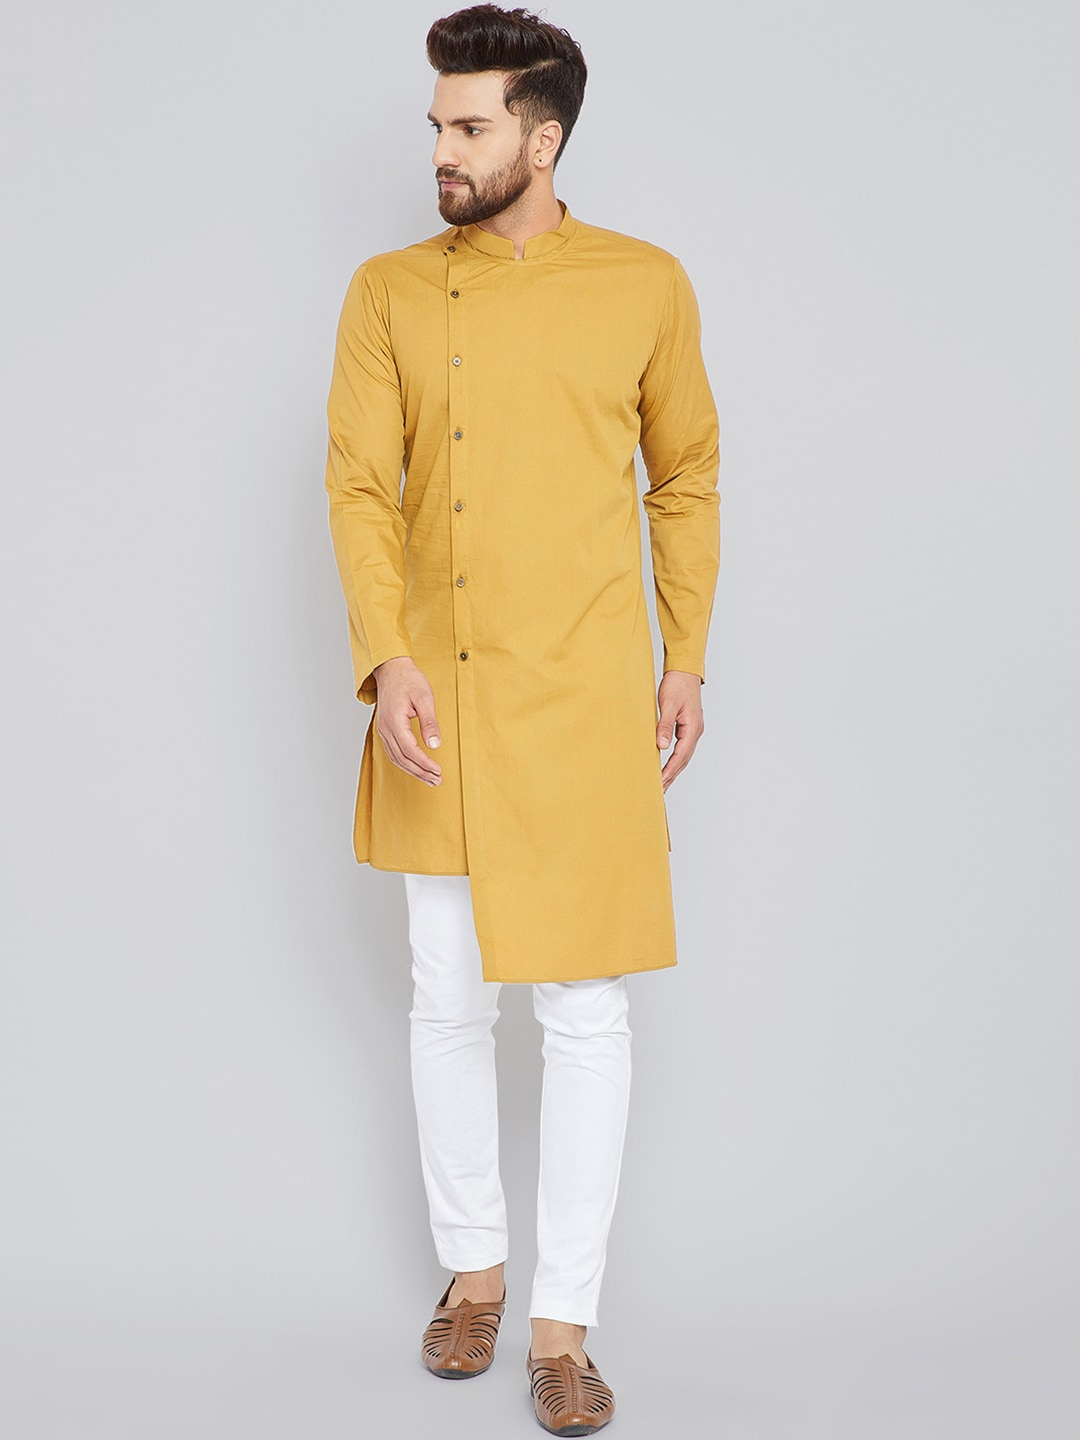 771097269ed Ethnic Wear for Men - Buy Gent s Ethnic Wear Online in India